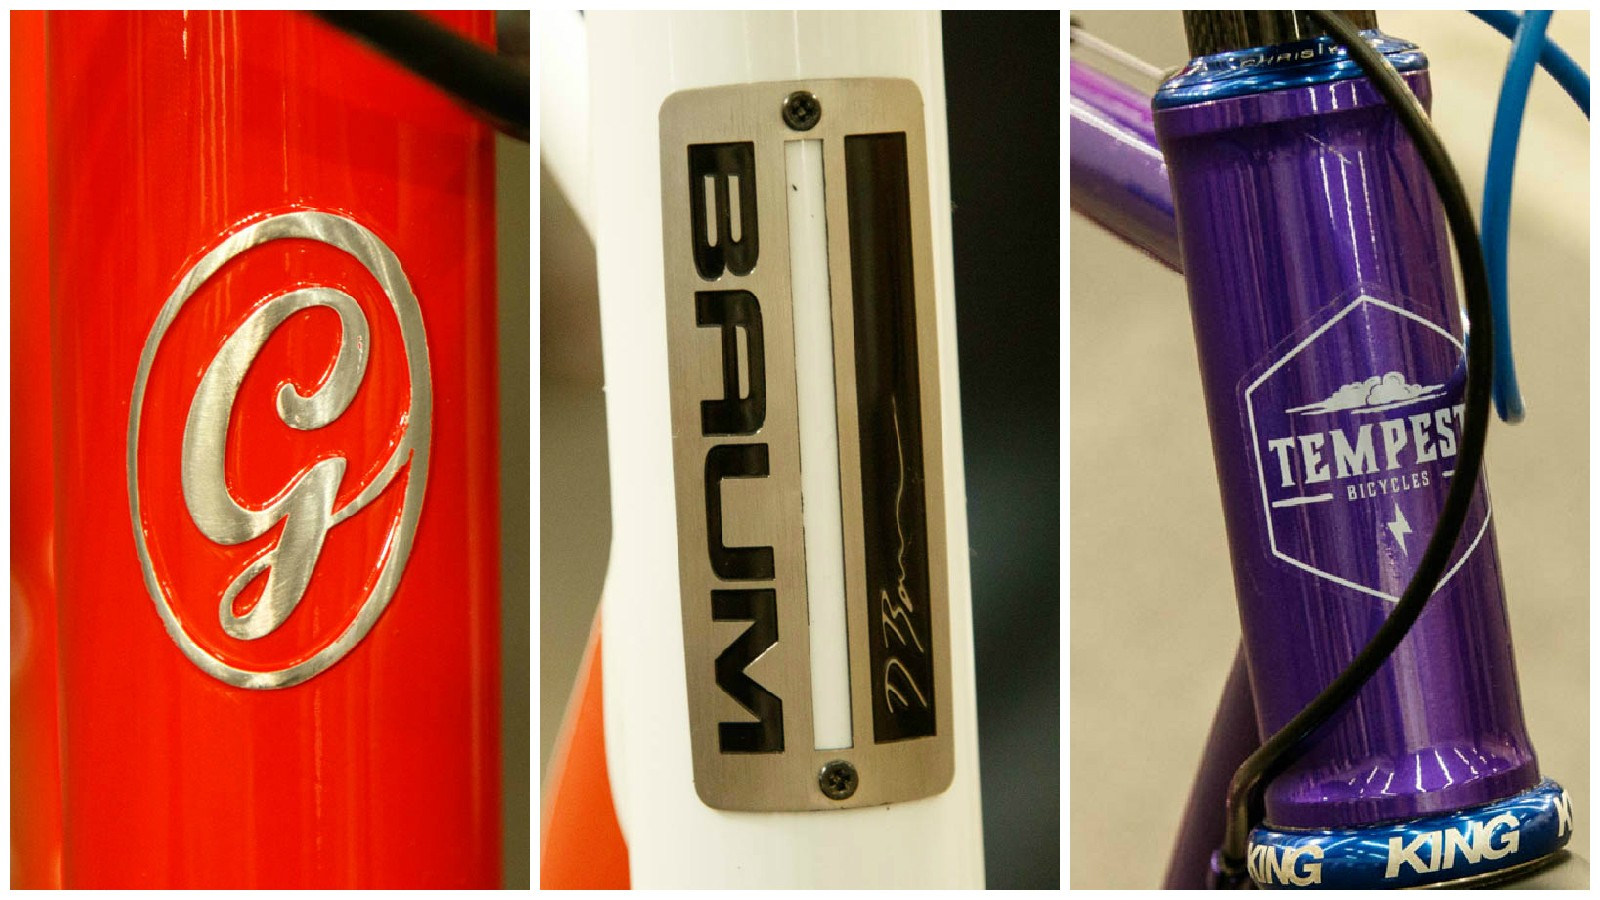 In this first article, we take a brief look at frames from Gellie Custom, Baum Cycles and Tempest Bicycles